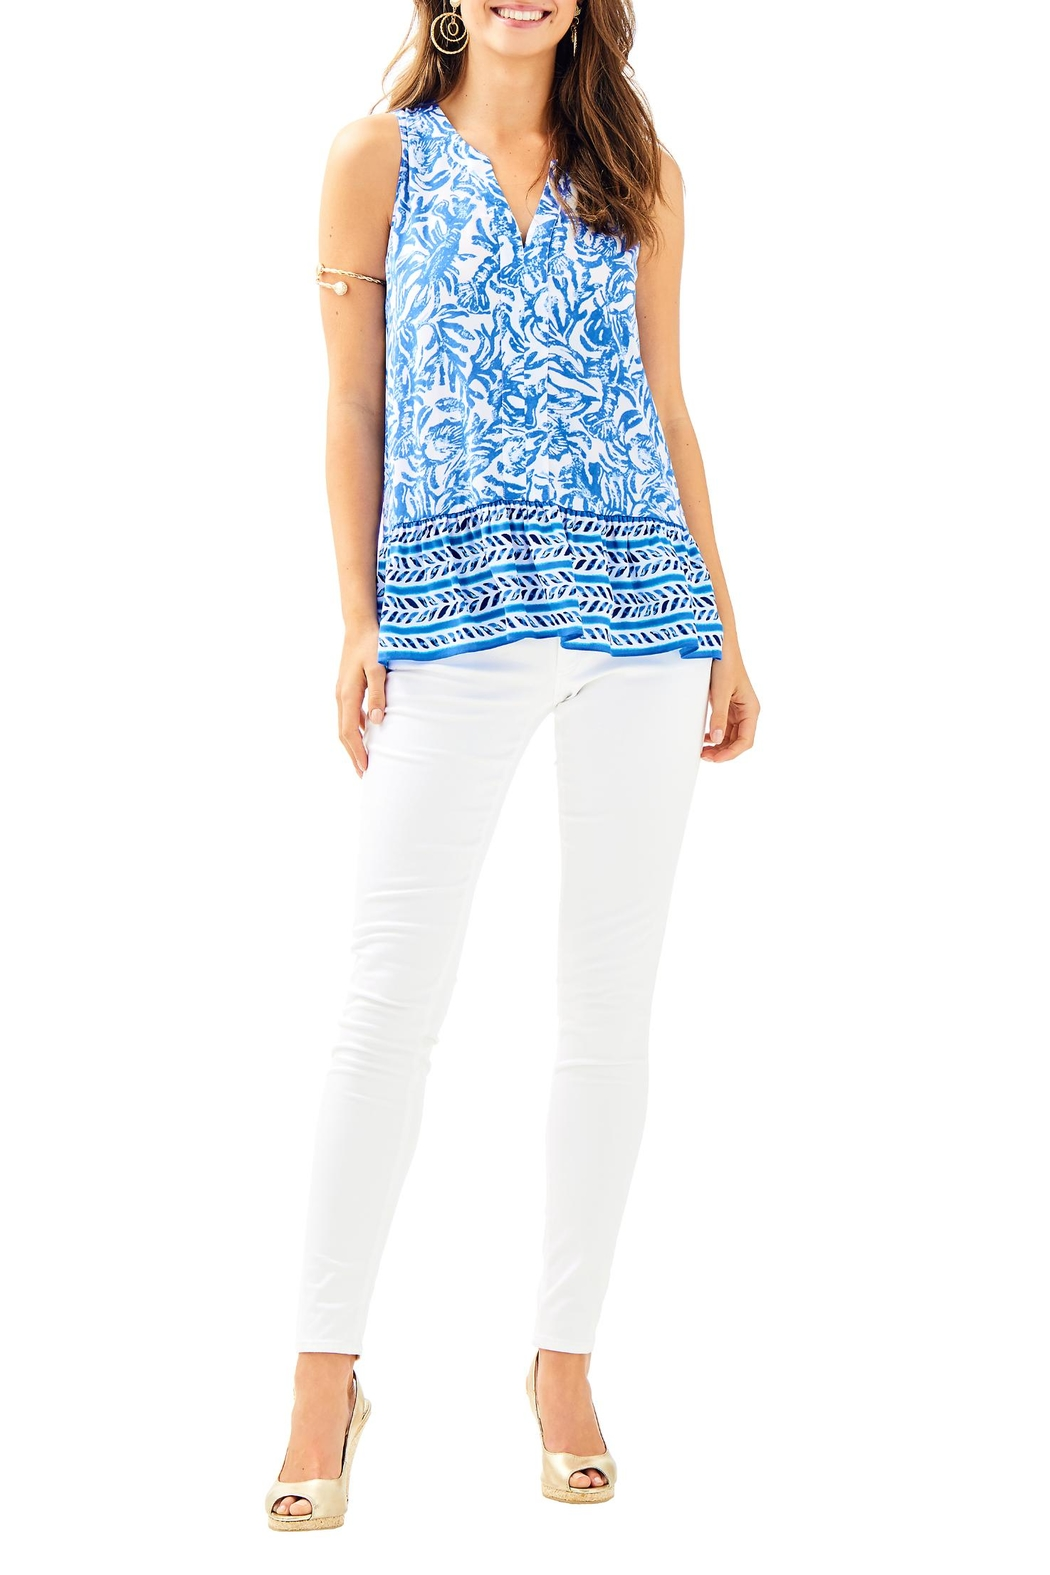 Lilly Pulitzer Gramercy Top - Side Cropped Image